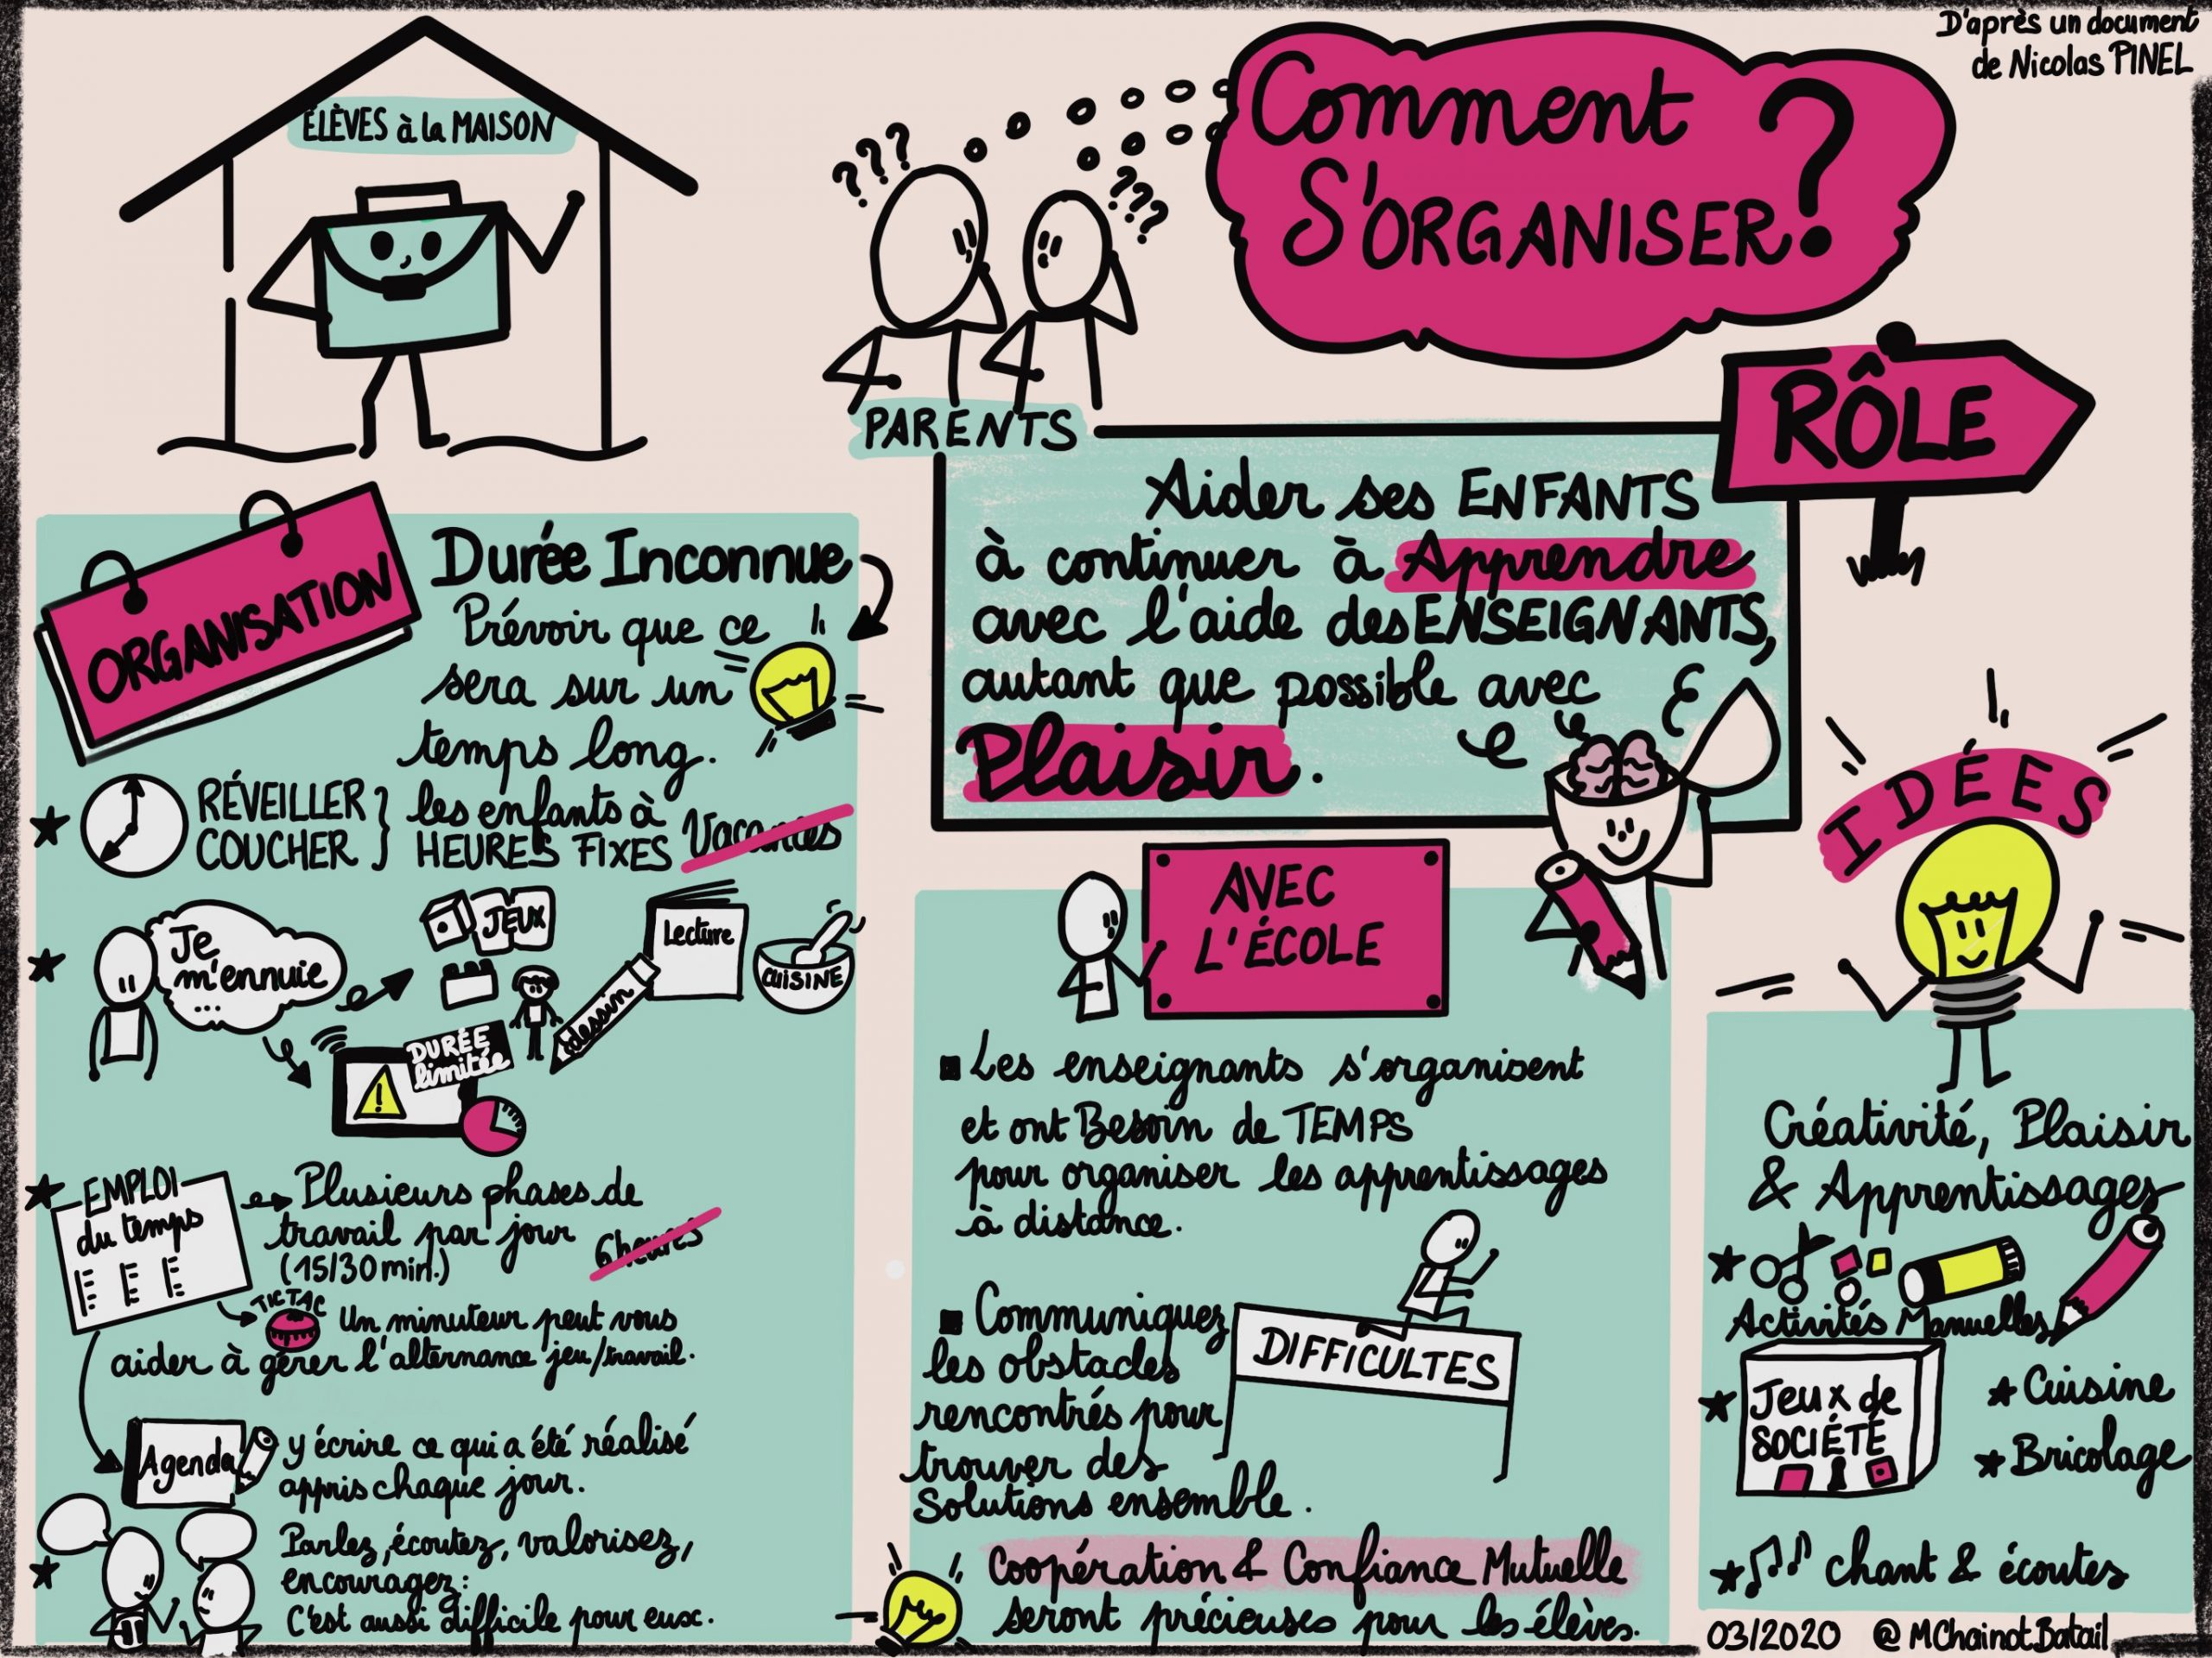 https://conservatoire.etab.ac-lille.fr/files/2020/03/conti_infographie-scaled.jpg